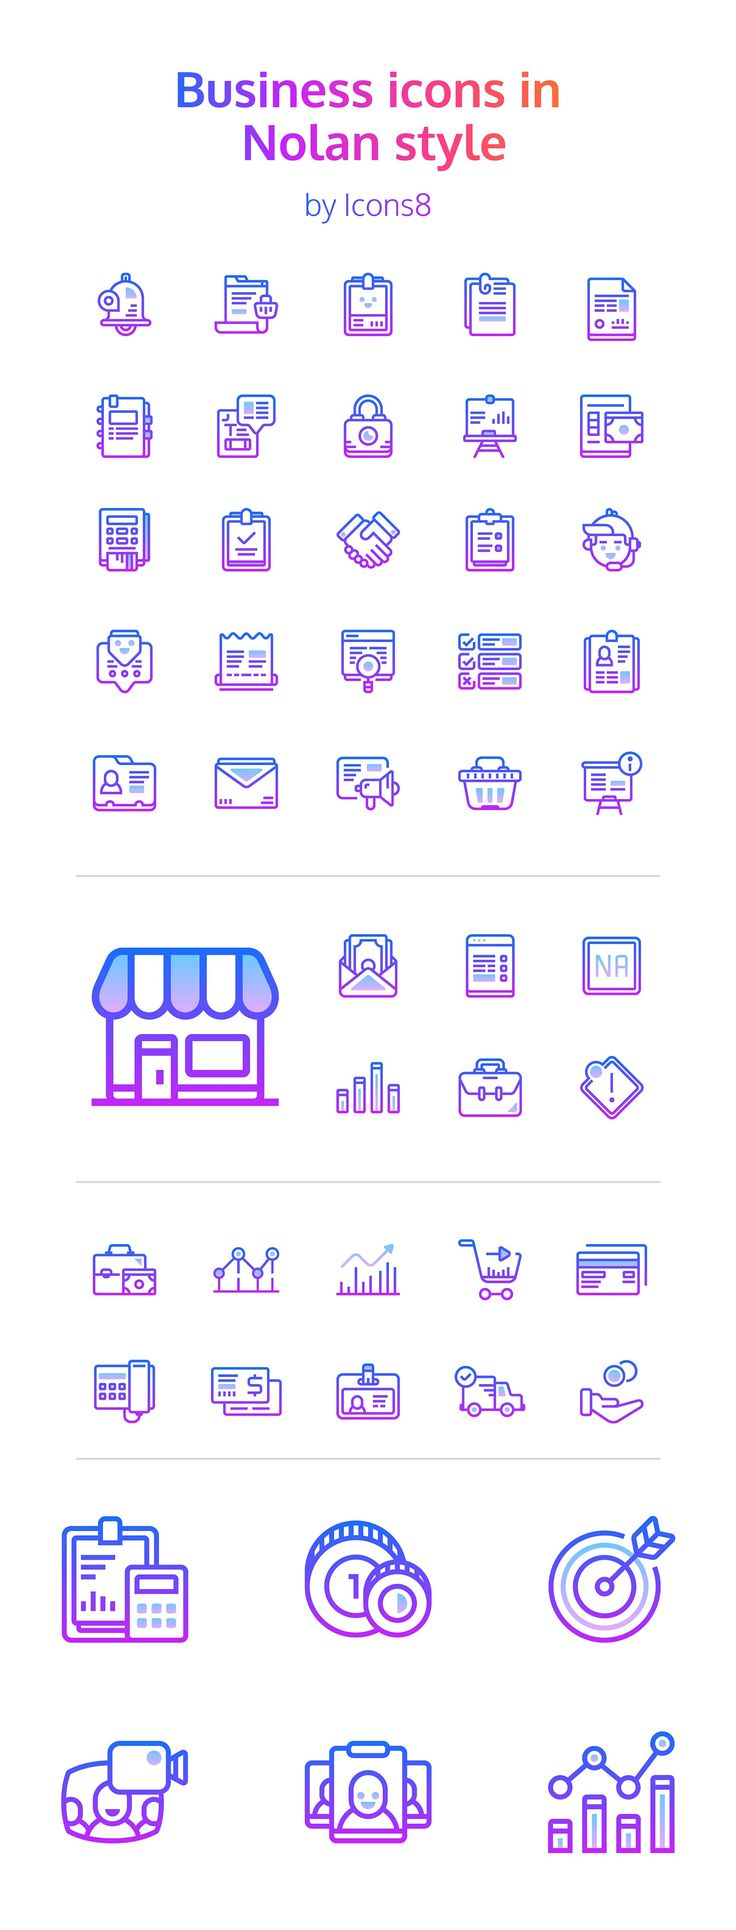 """We can never get enough icons, especially icons with a fresh approach to business concepts. So we're delighted to be able to bring you this free set of icons designed by Icons8. Createdin their new """"Nolan"""" style, the icons are great for adding some personality to an otherwise corporate site. Startups will love them, and they're super flexible. The 48 icons include UI elements like files and folders, app elements like alarms and email, and e-commerce elements like carts and charts. Some of…"""